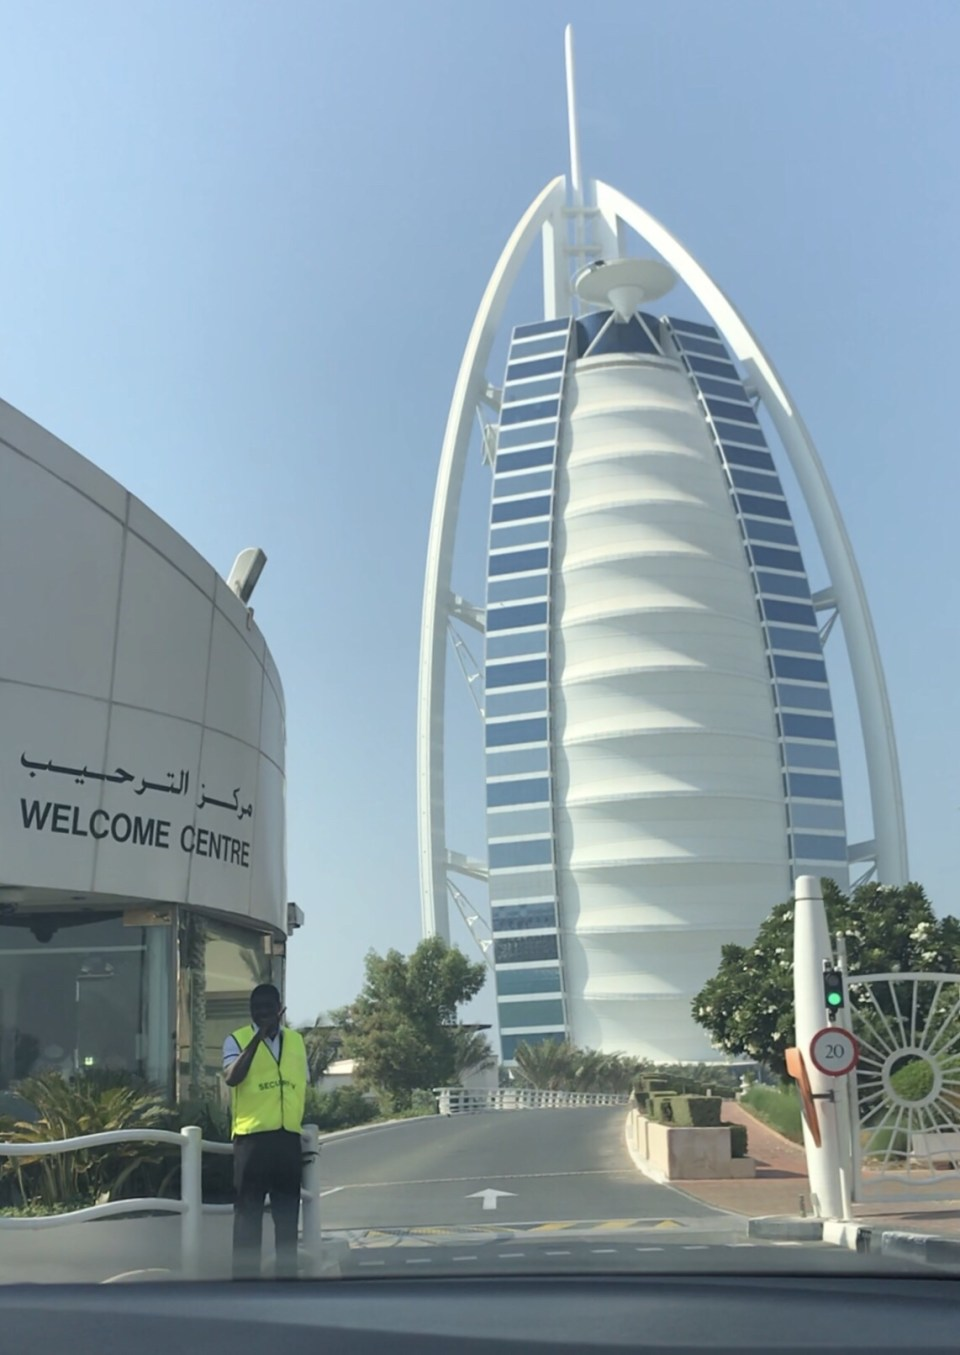 Burj Al Arab Jumeirah o hotel mais luxuoso do mundo